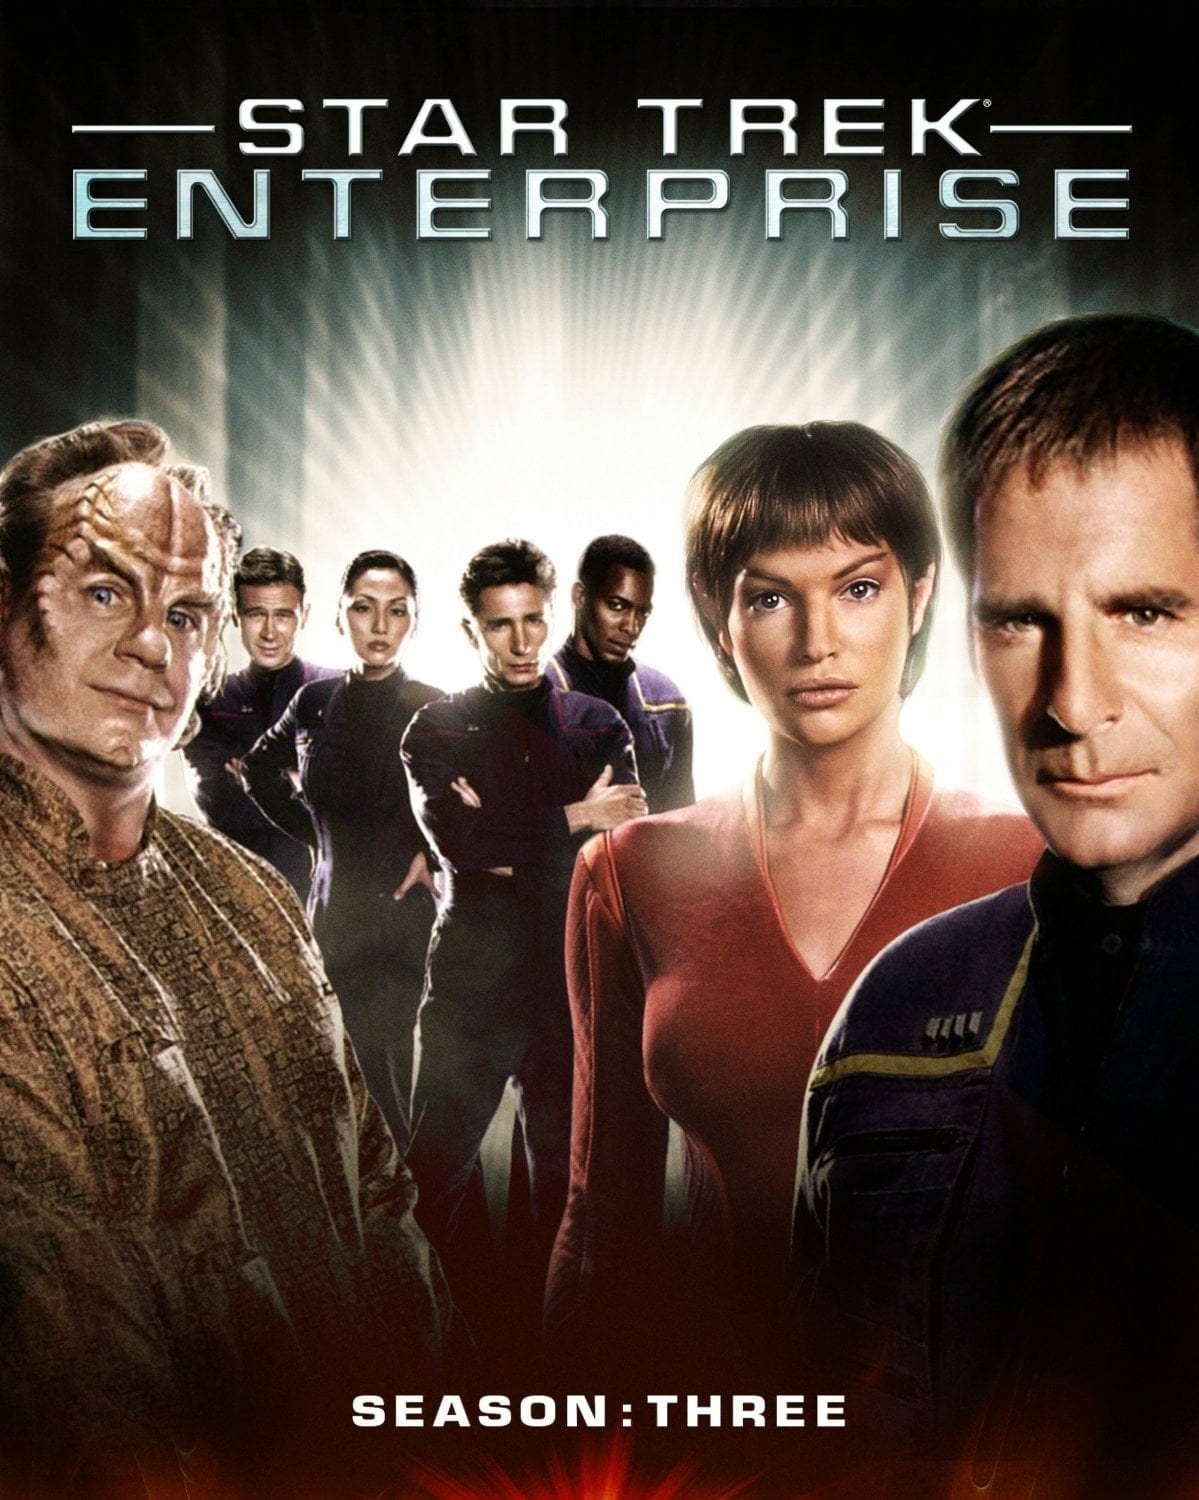 Star Trek: Enterprise Season 3 Blu-Ray Includes Temporal Cold War: Declassified